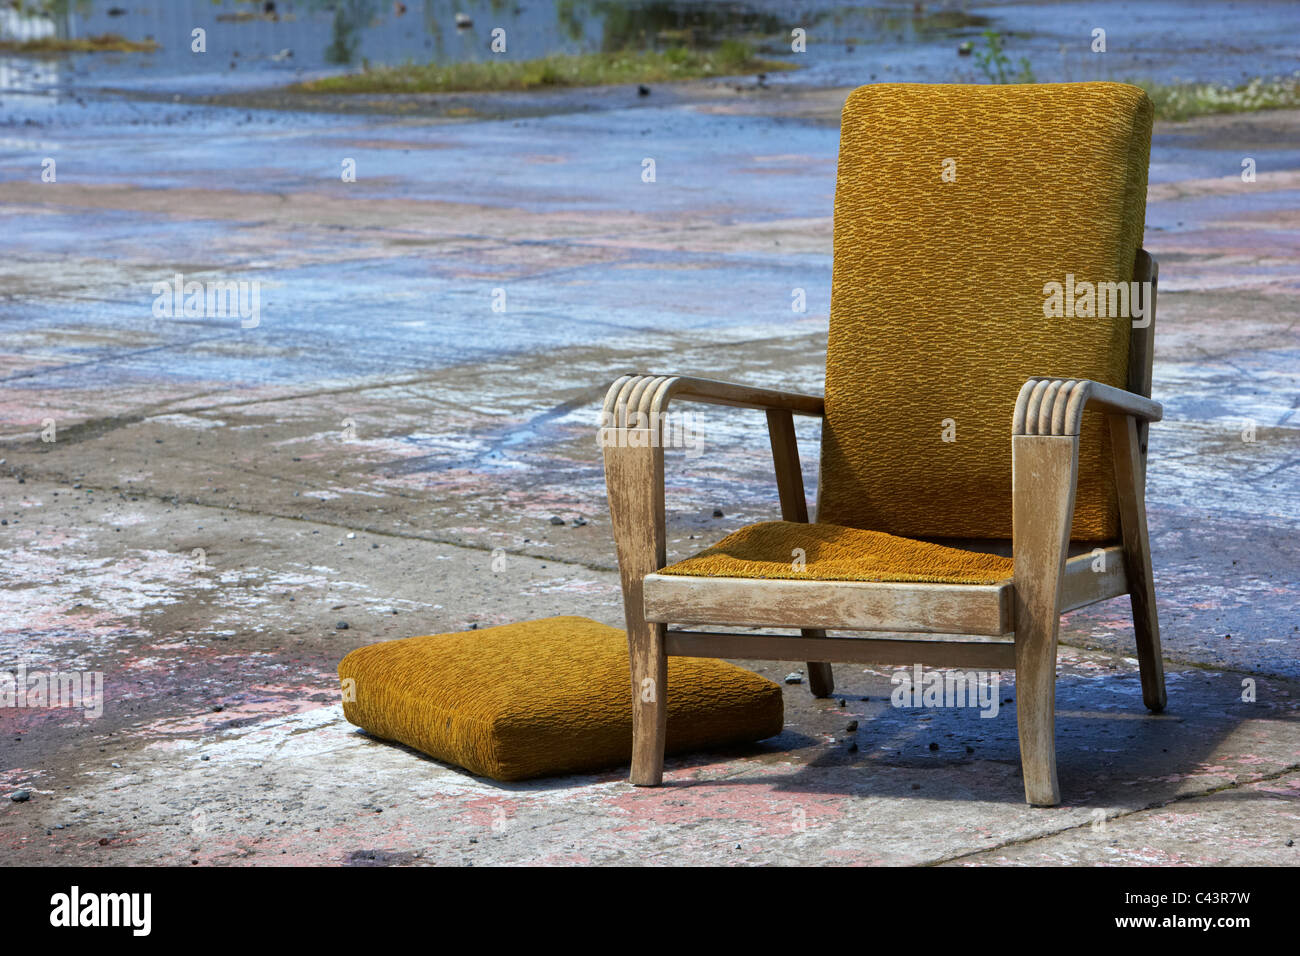 old discarded 70s yellow armchair furniture thrown away - Stock Image